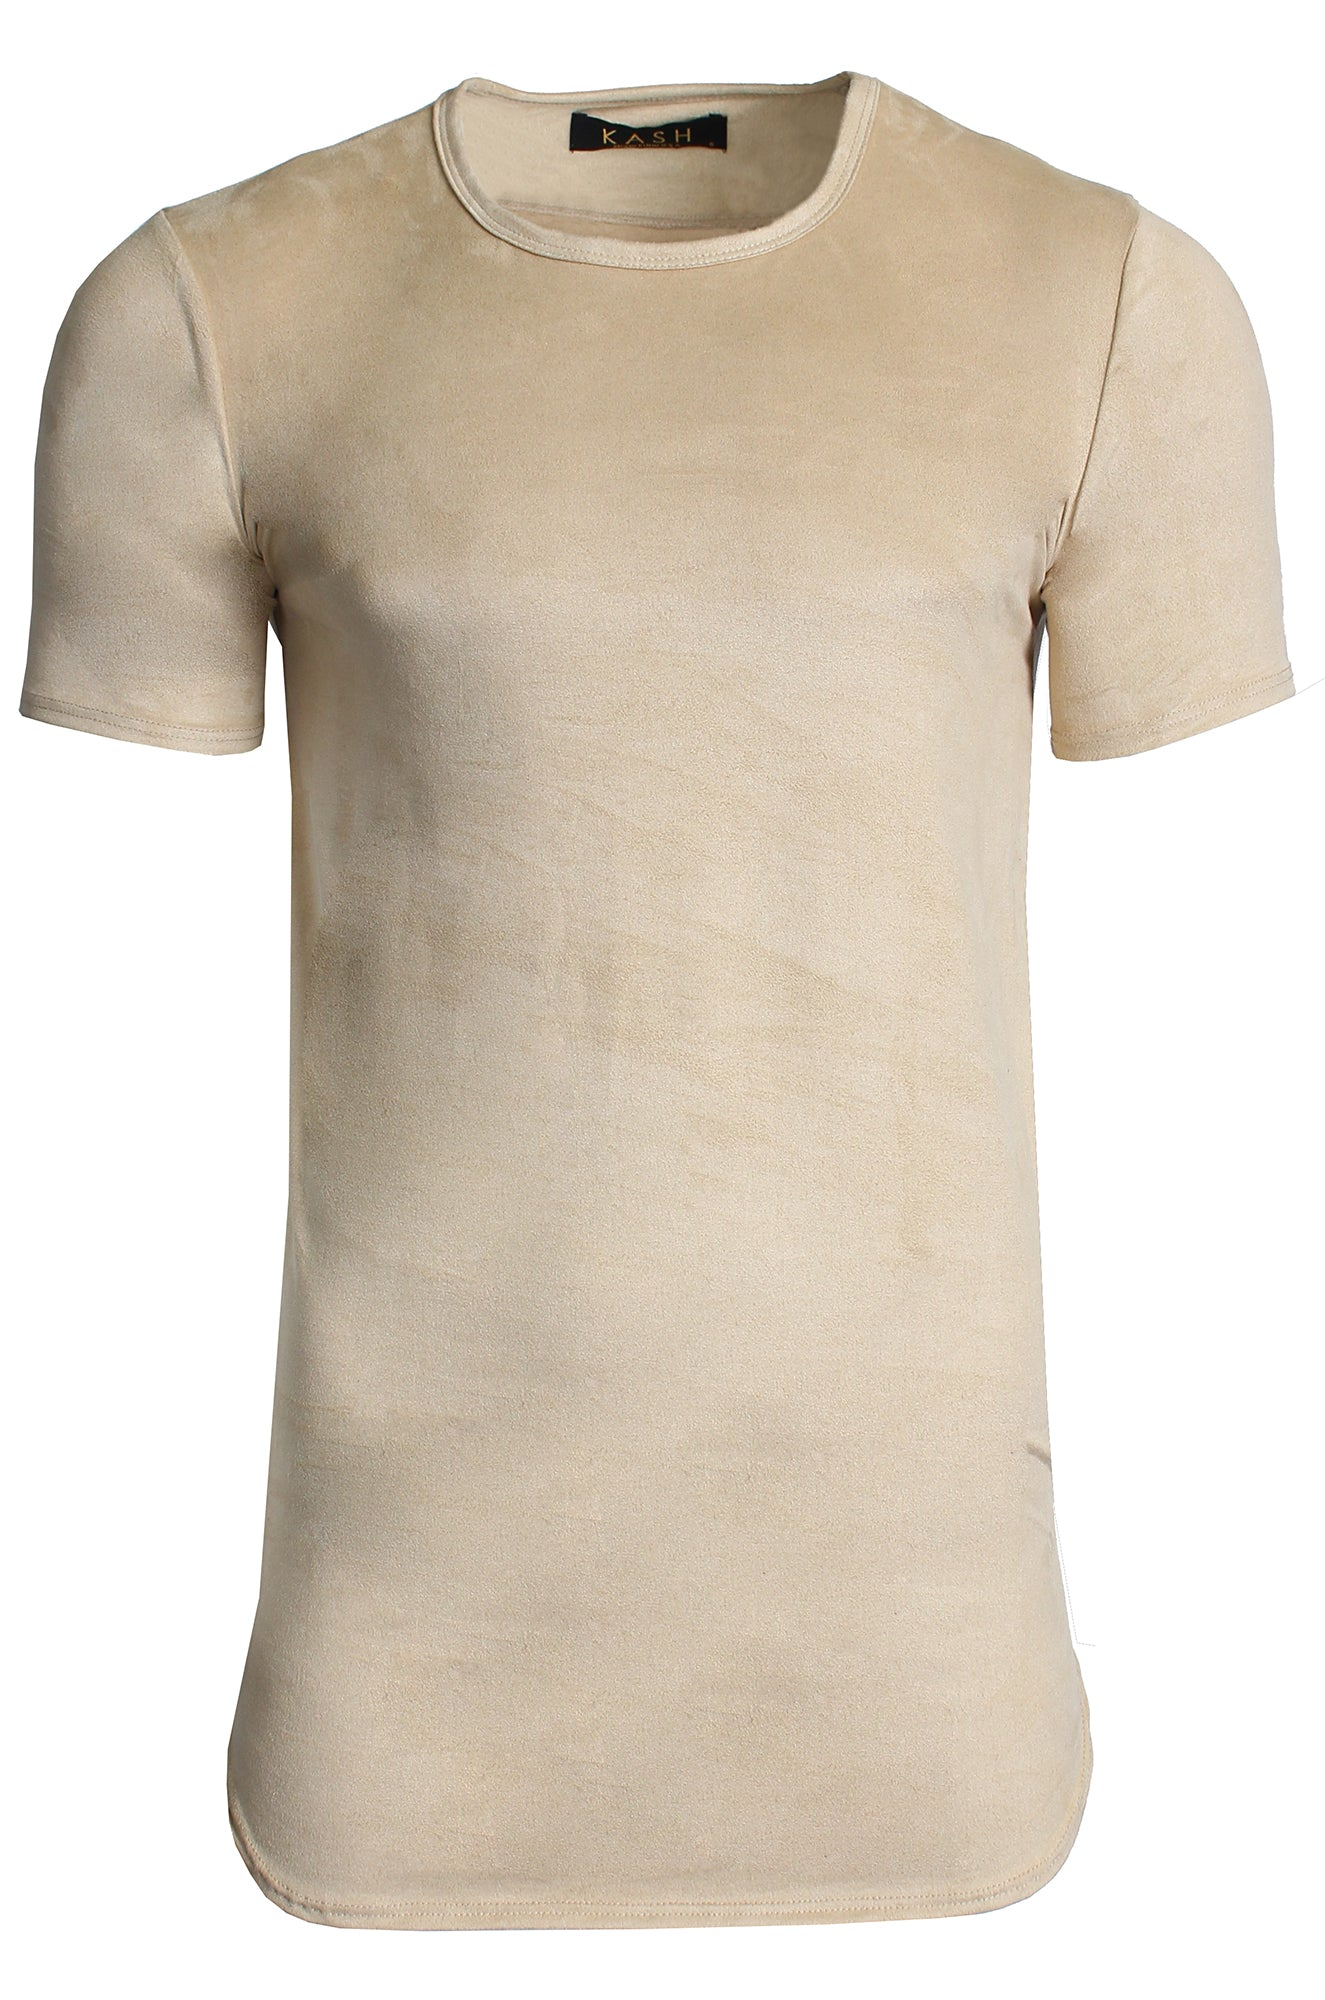 Elongated Stretch Suede Tan Tunic